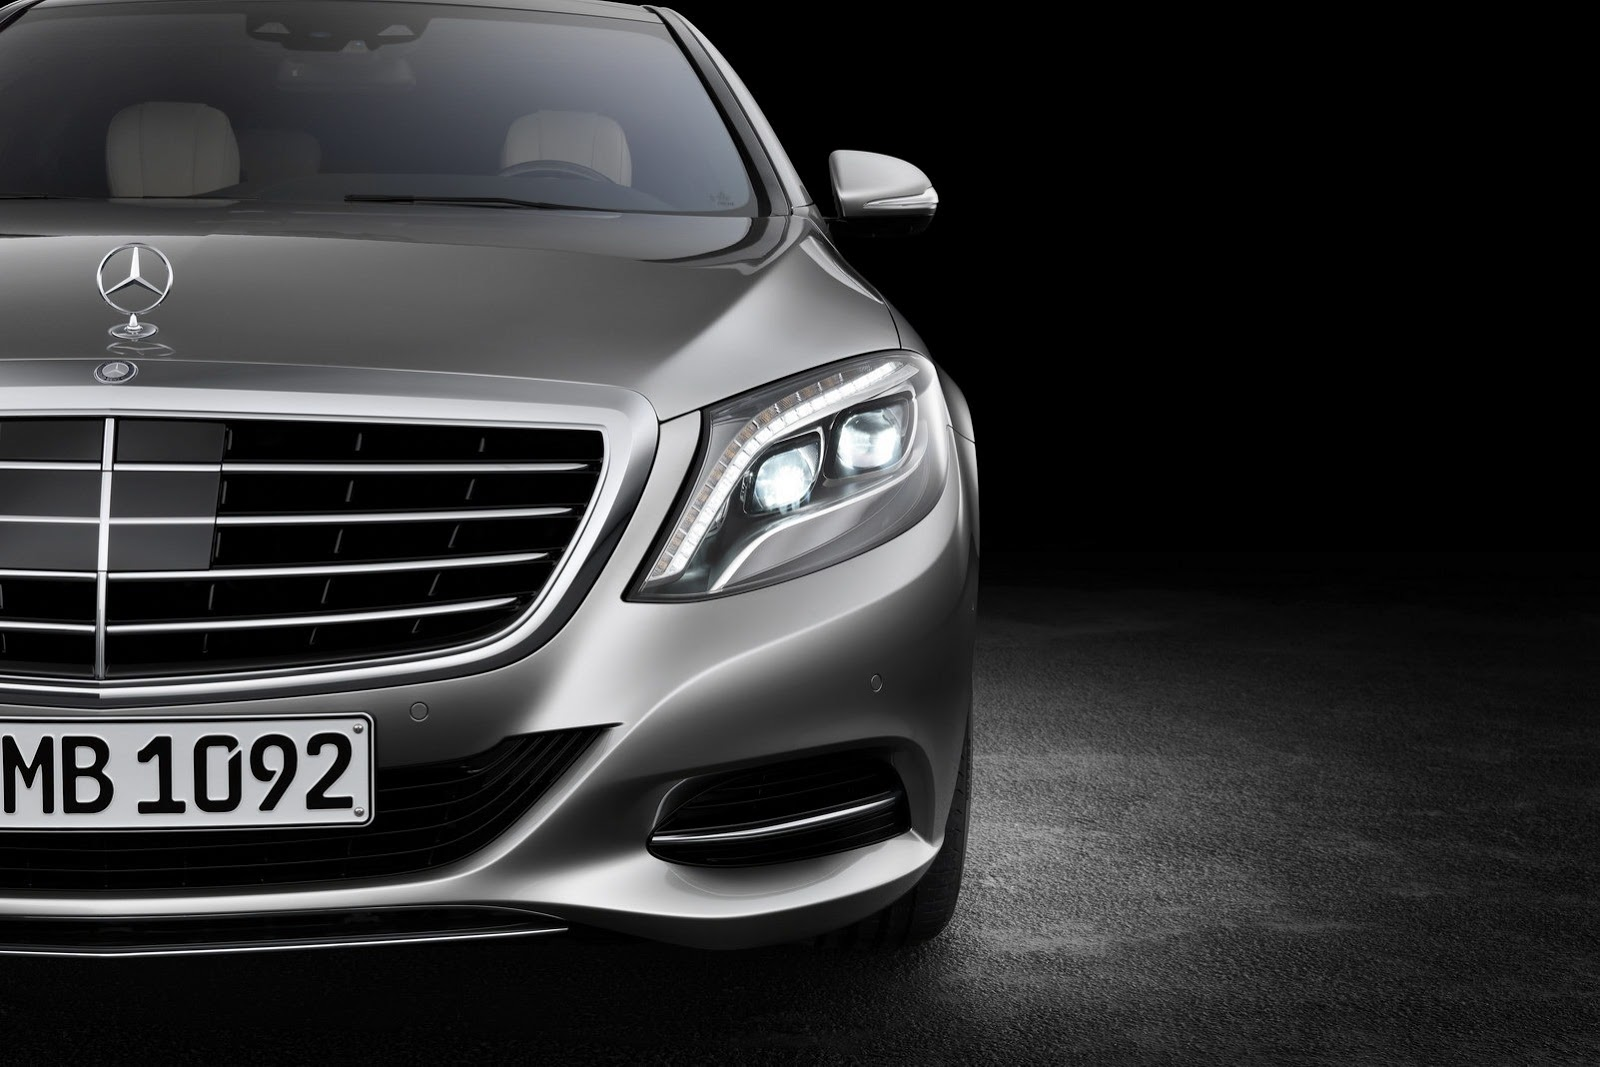 2014 Mercedes Benz S-Class - SMADE MEDIA (66)